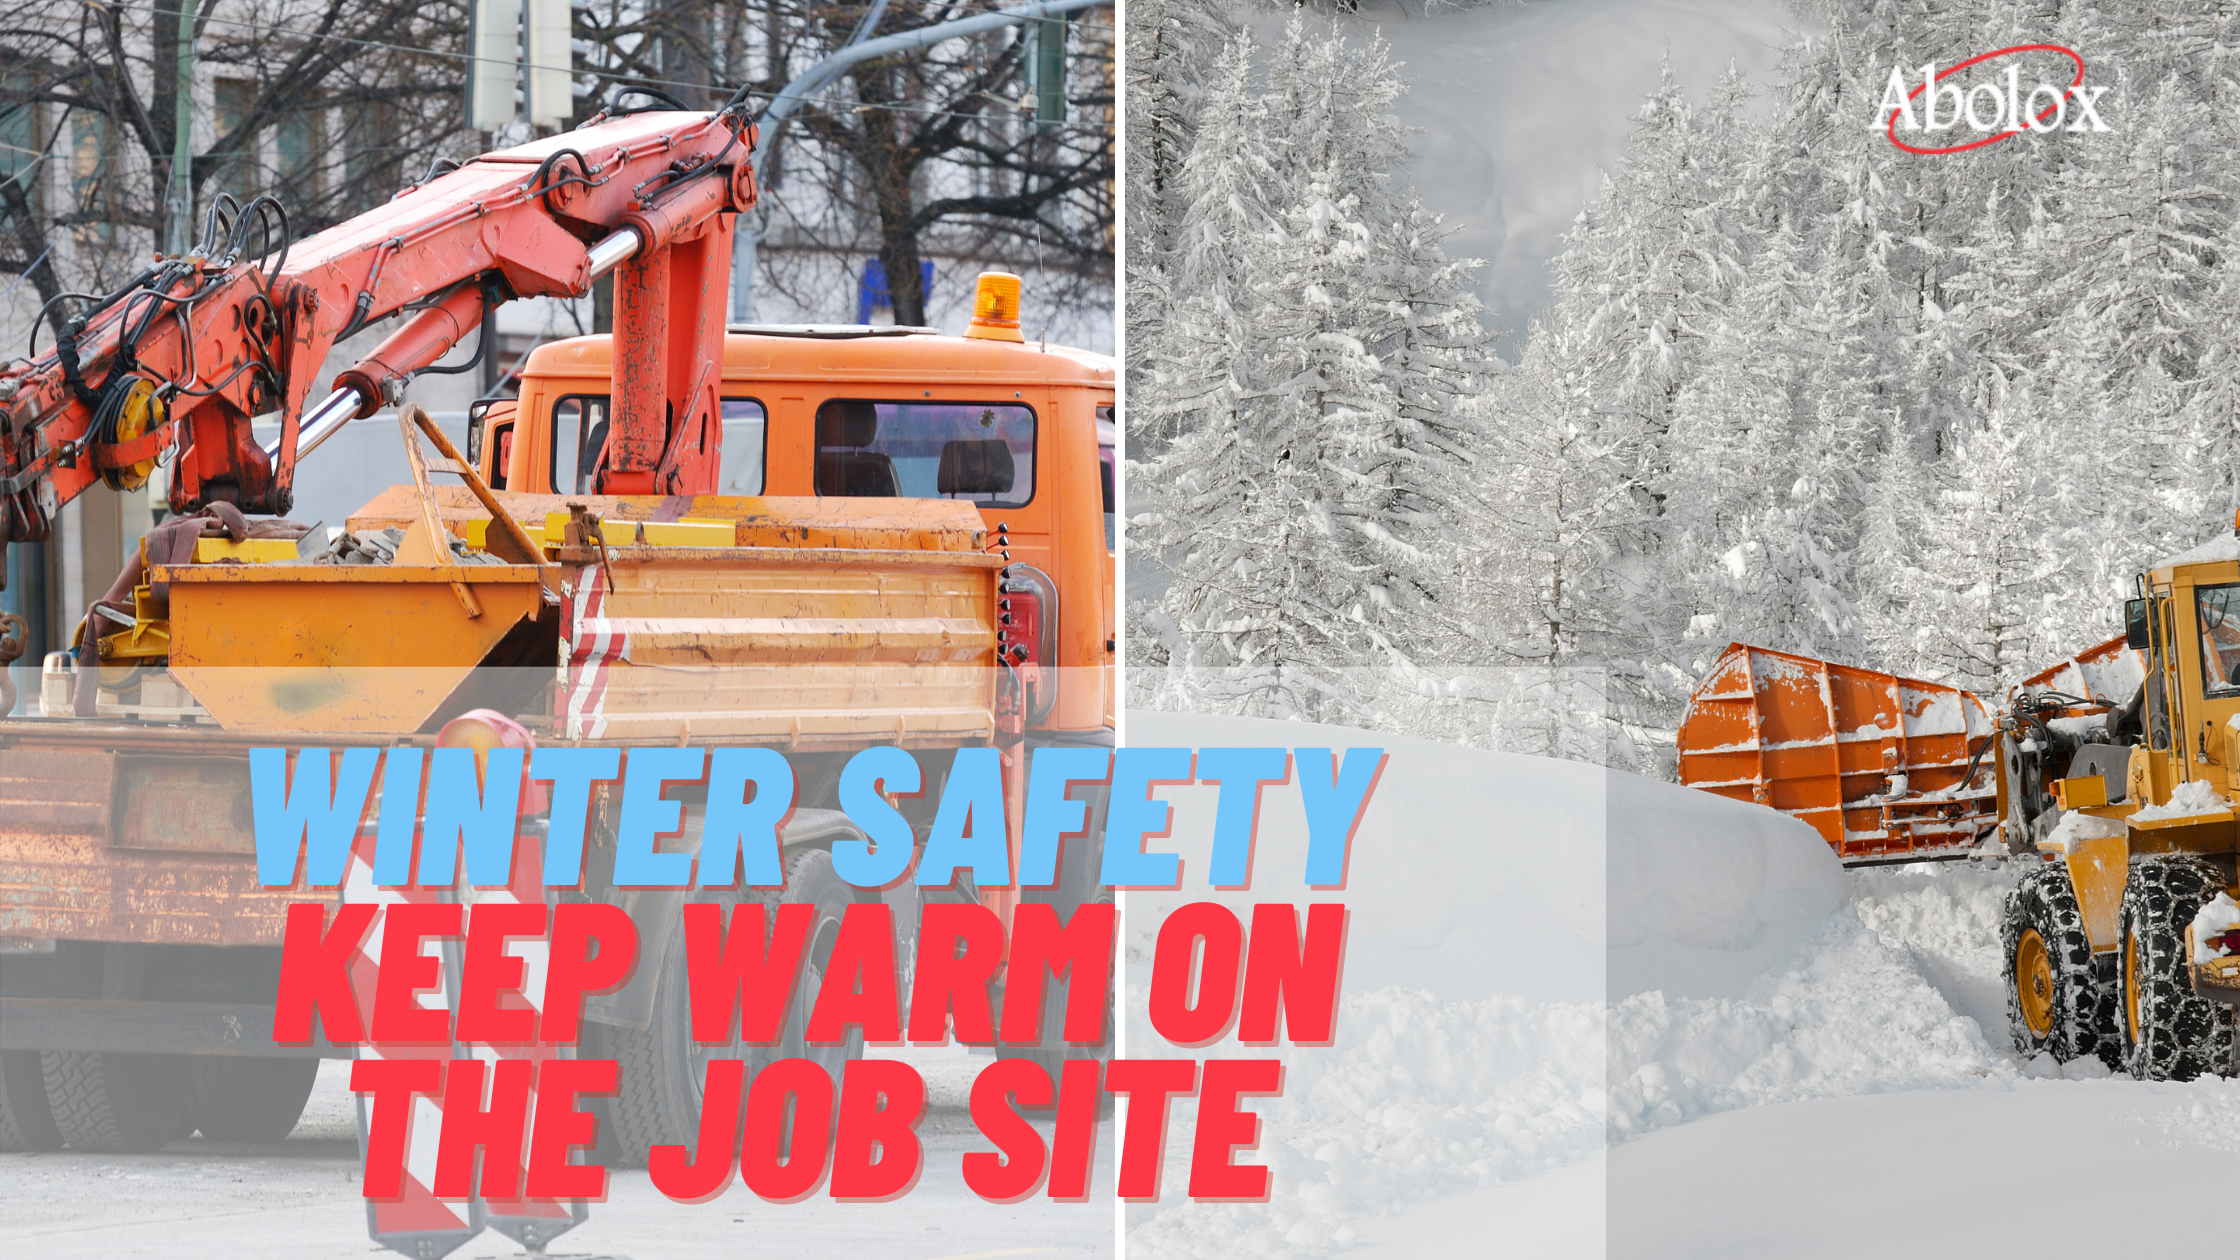 Winter Safety Gear - How to Keep Warm on the Job Site